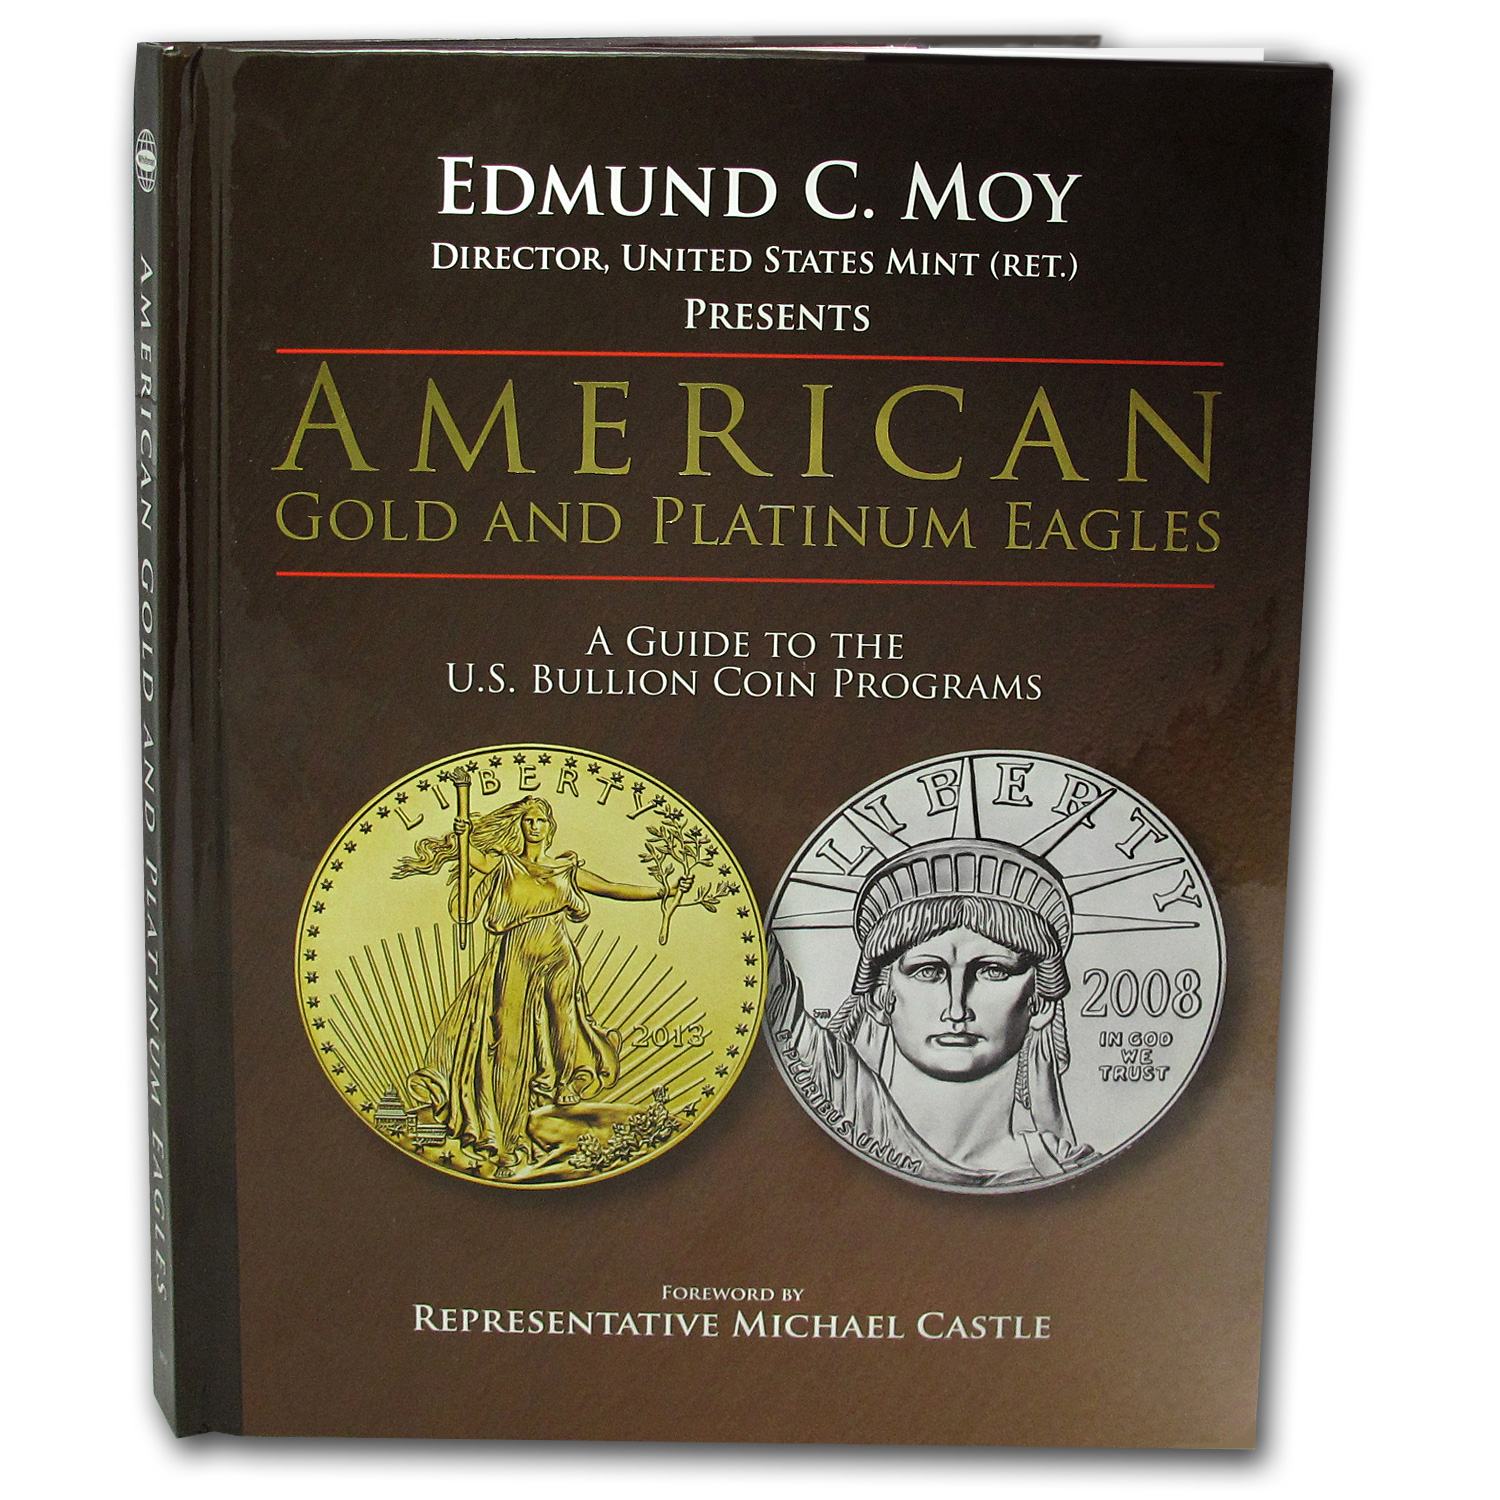 1986-1991 6-Coin 1/4 oz Gold American Eagle Set (Roman Numerals)